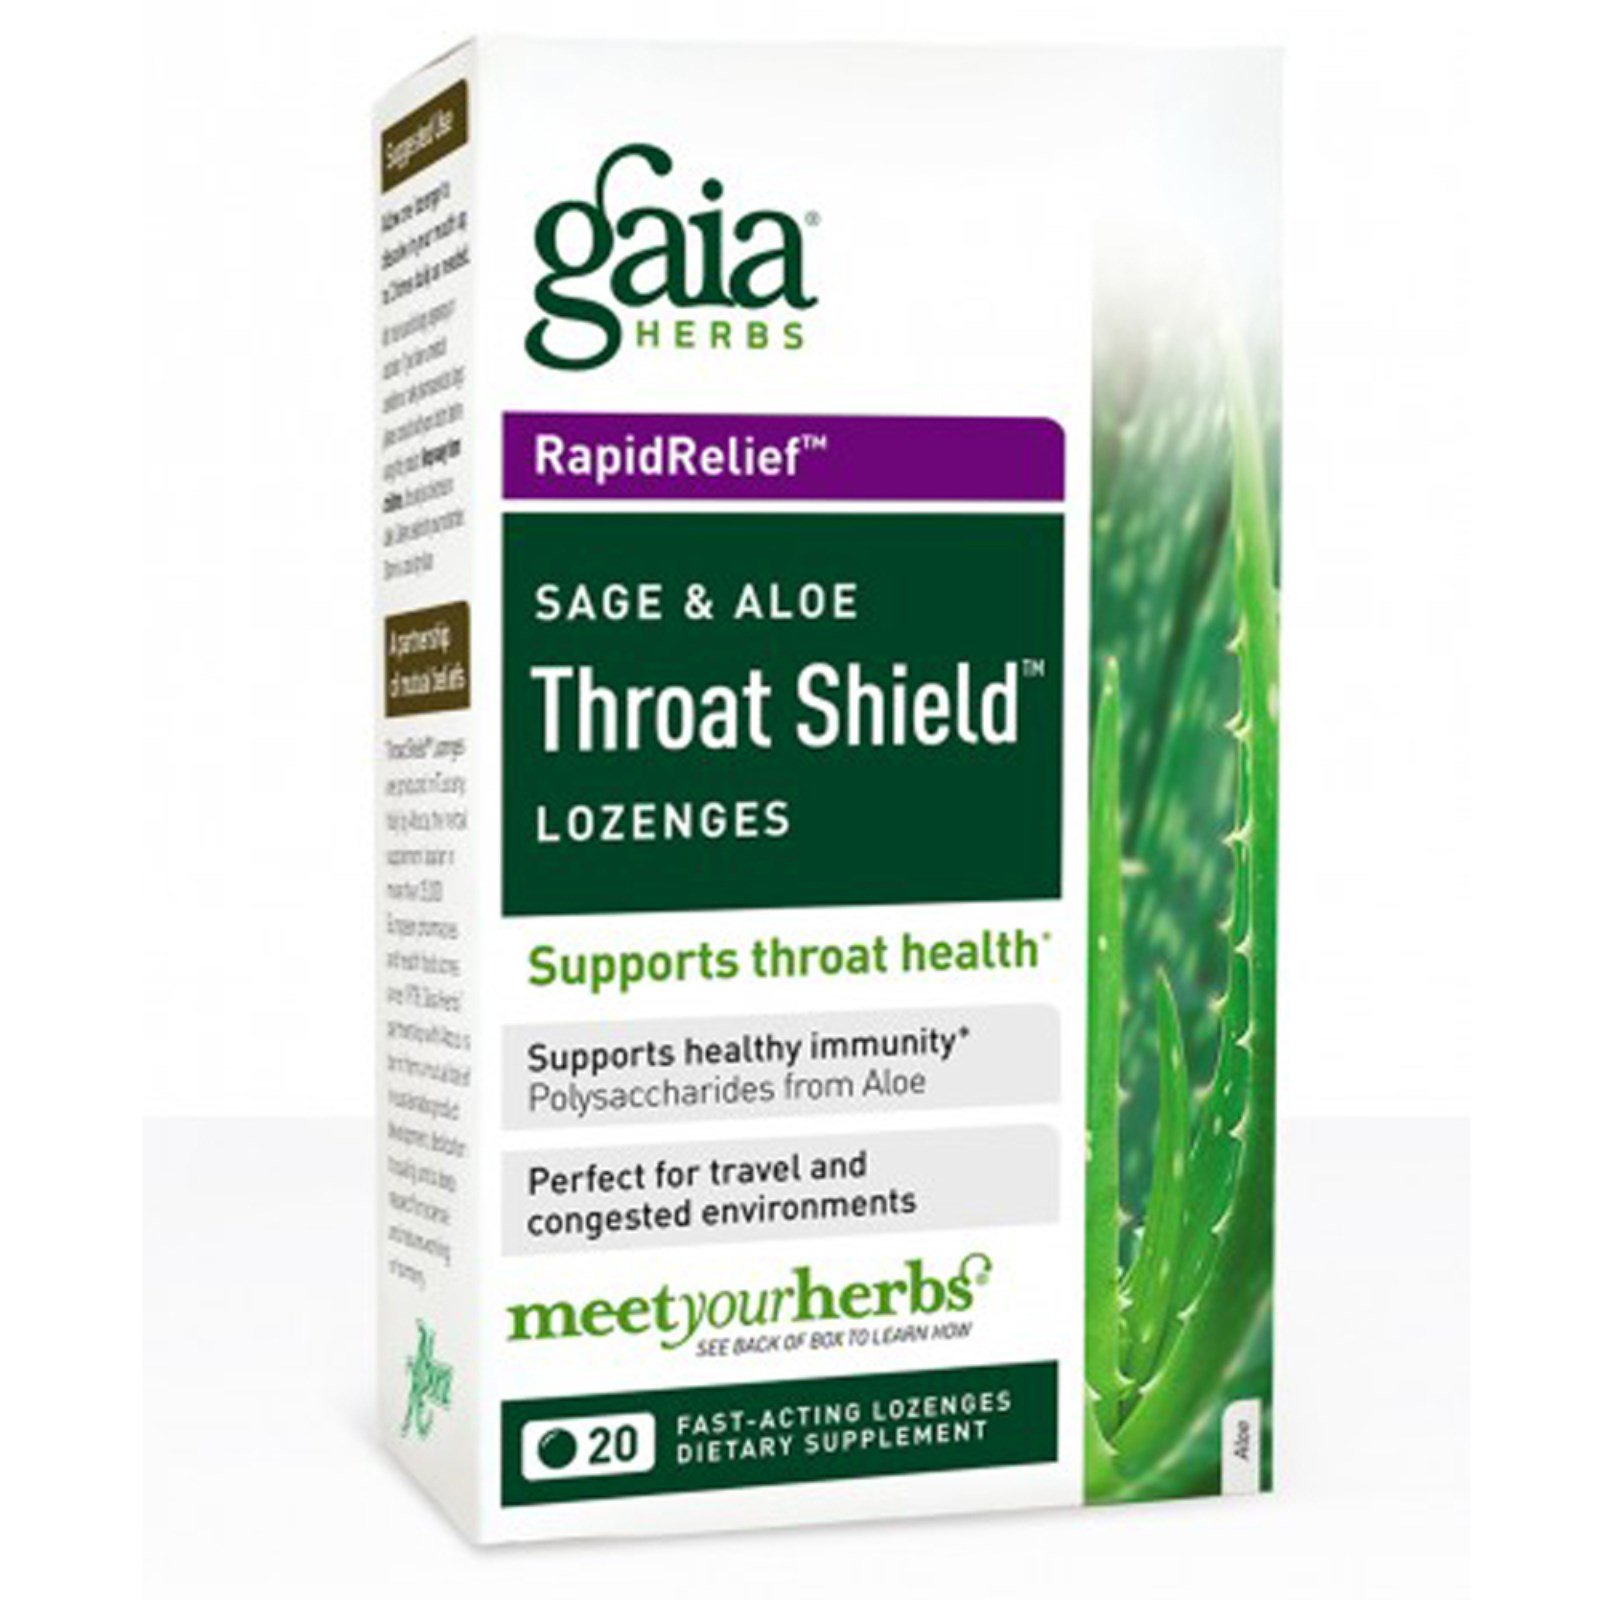 Sage (lozenges) - an effective tool in the fight against diseases of the throat 97